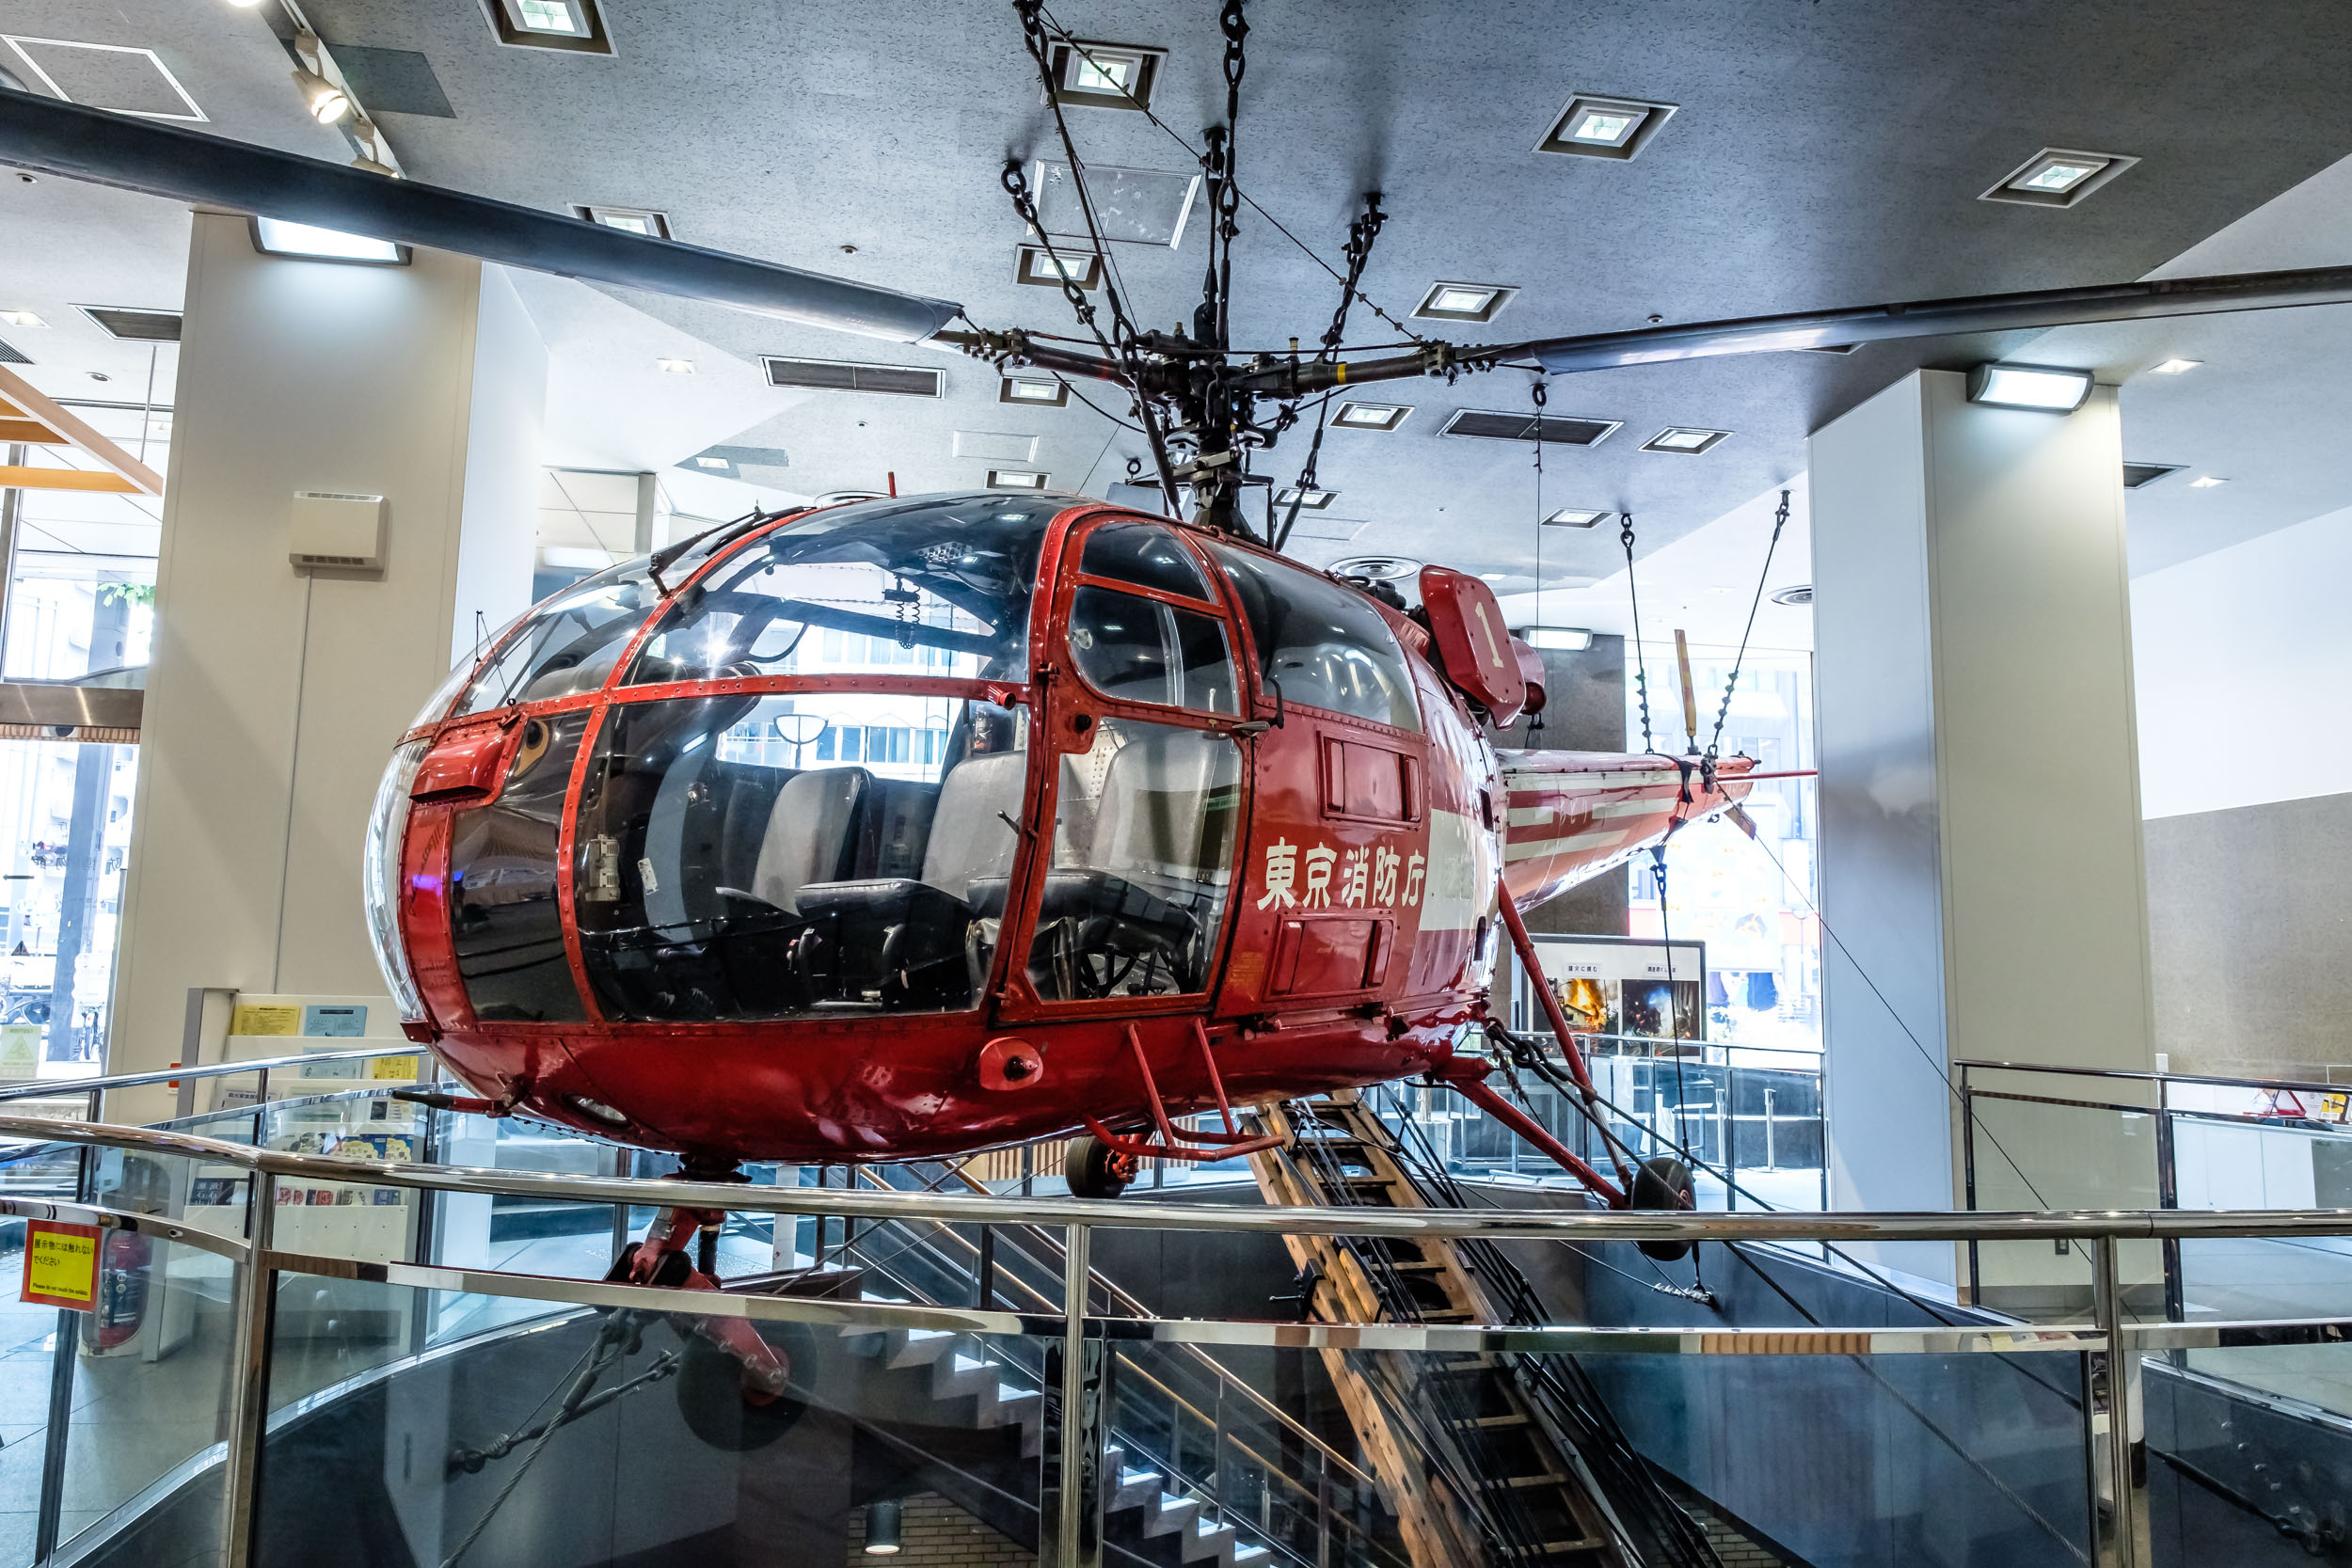 Tokyo Fire Department helicopter on the first floor of the Fire Museum